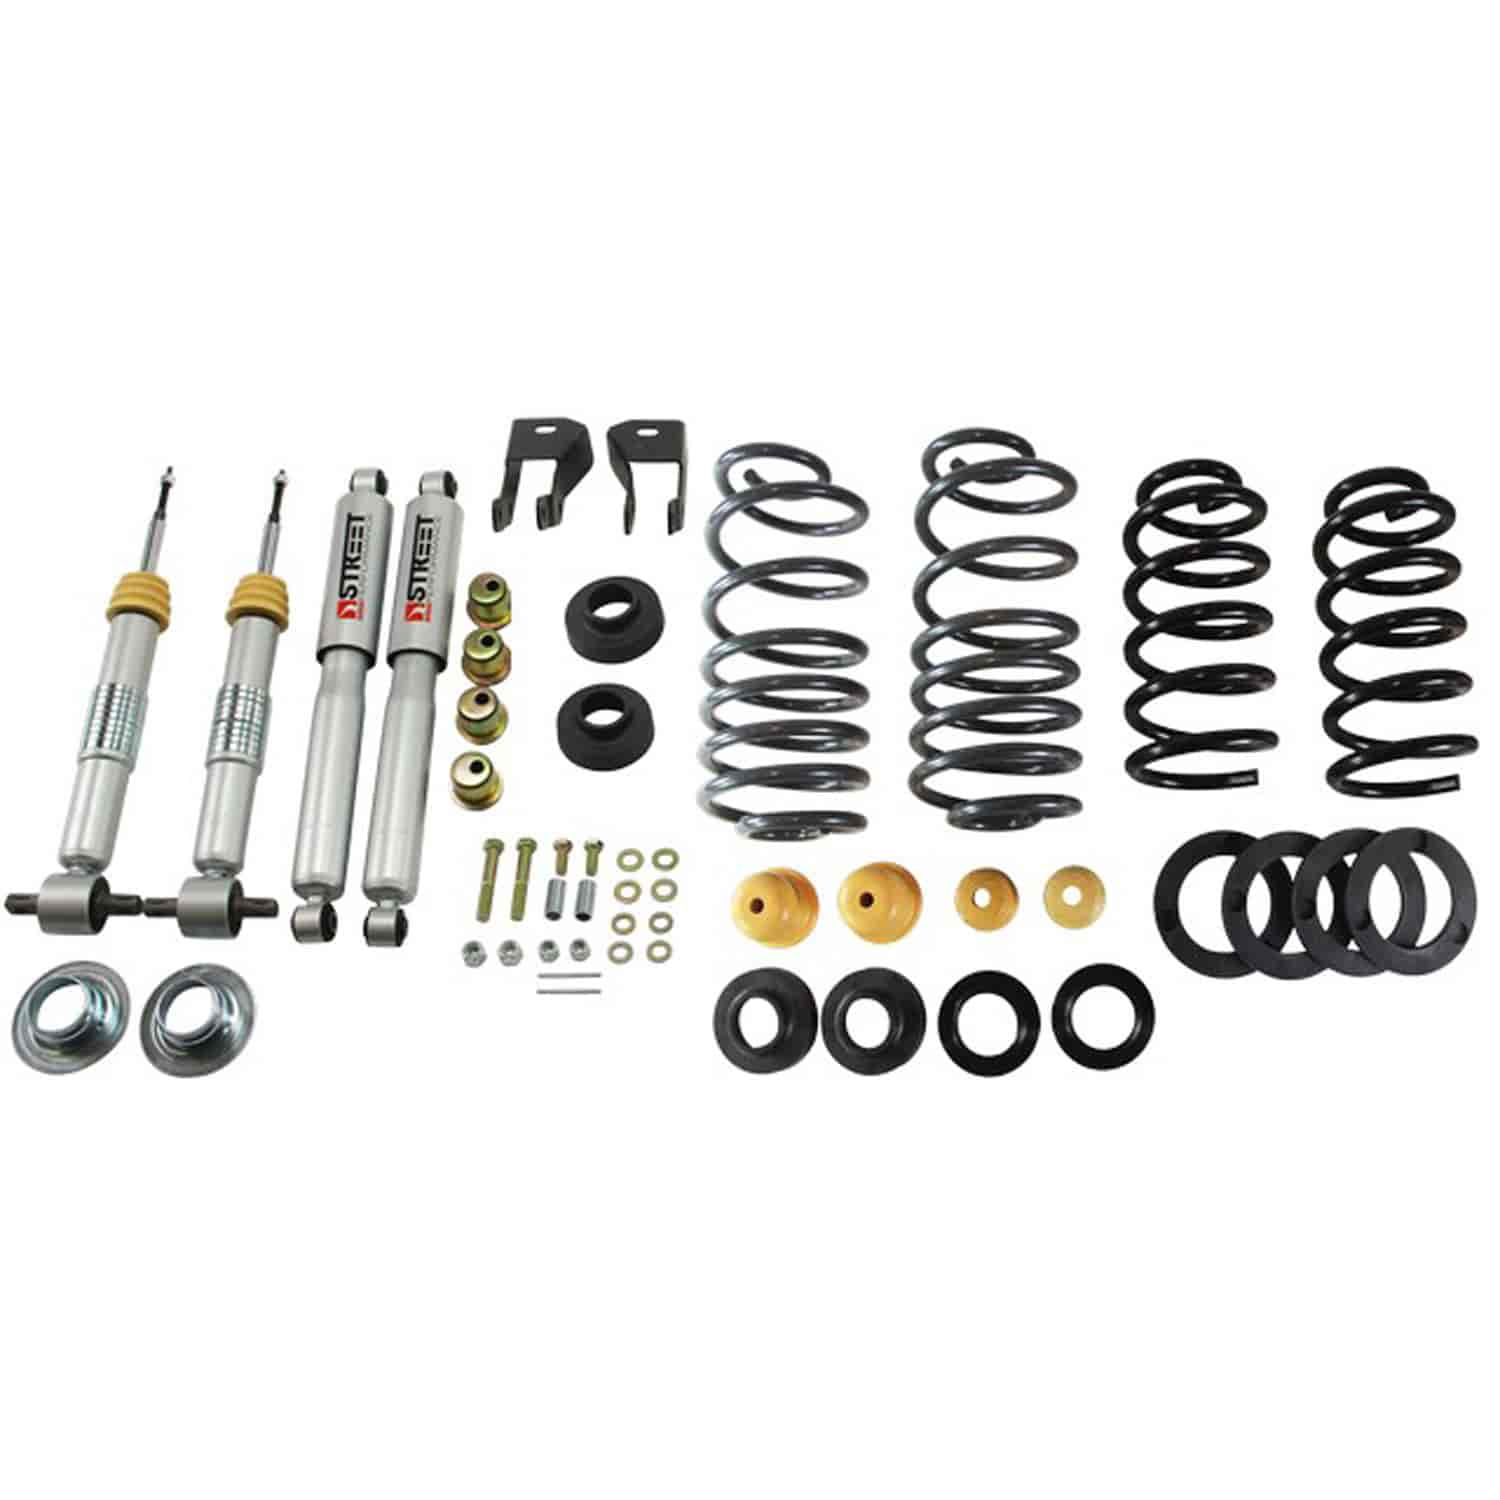 Belltech 998SP: Complete Lowering Kit 2015-Up Chevy